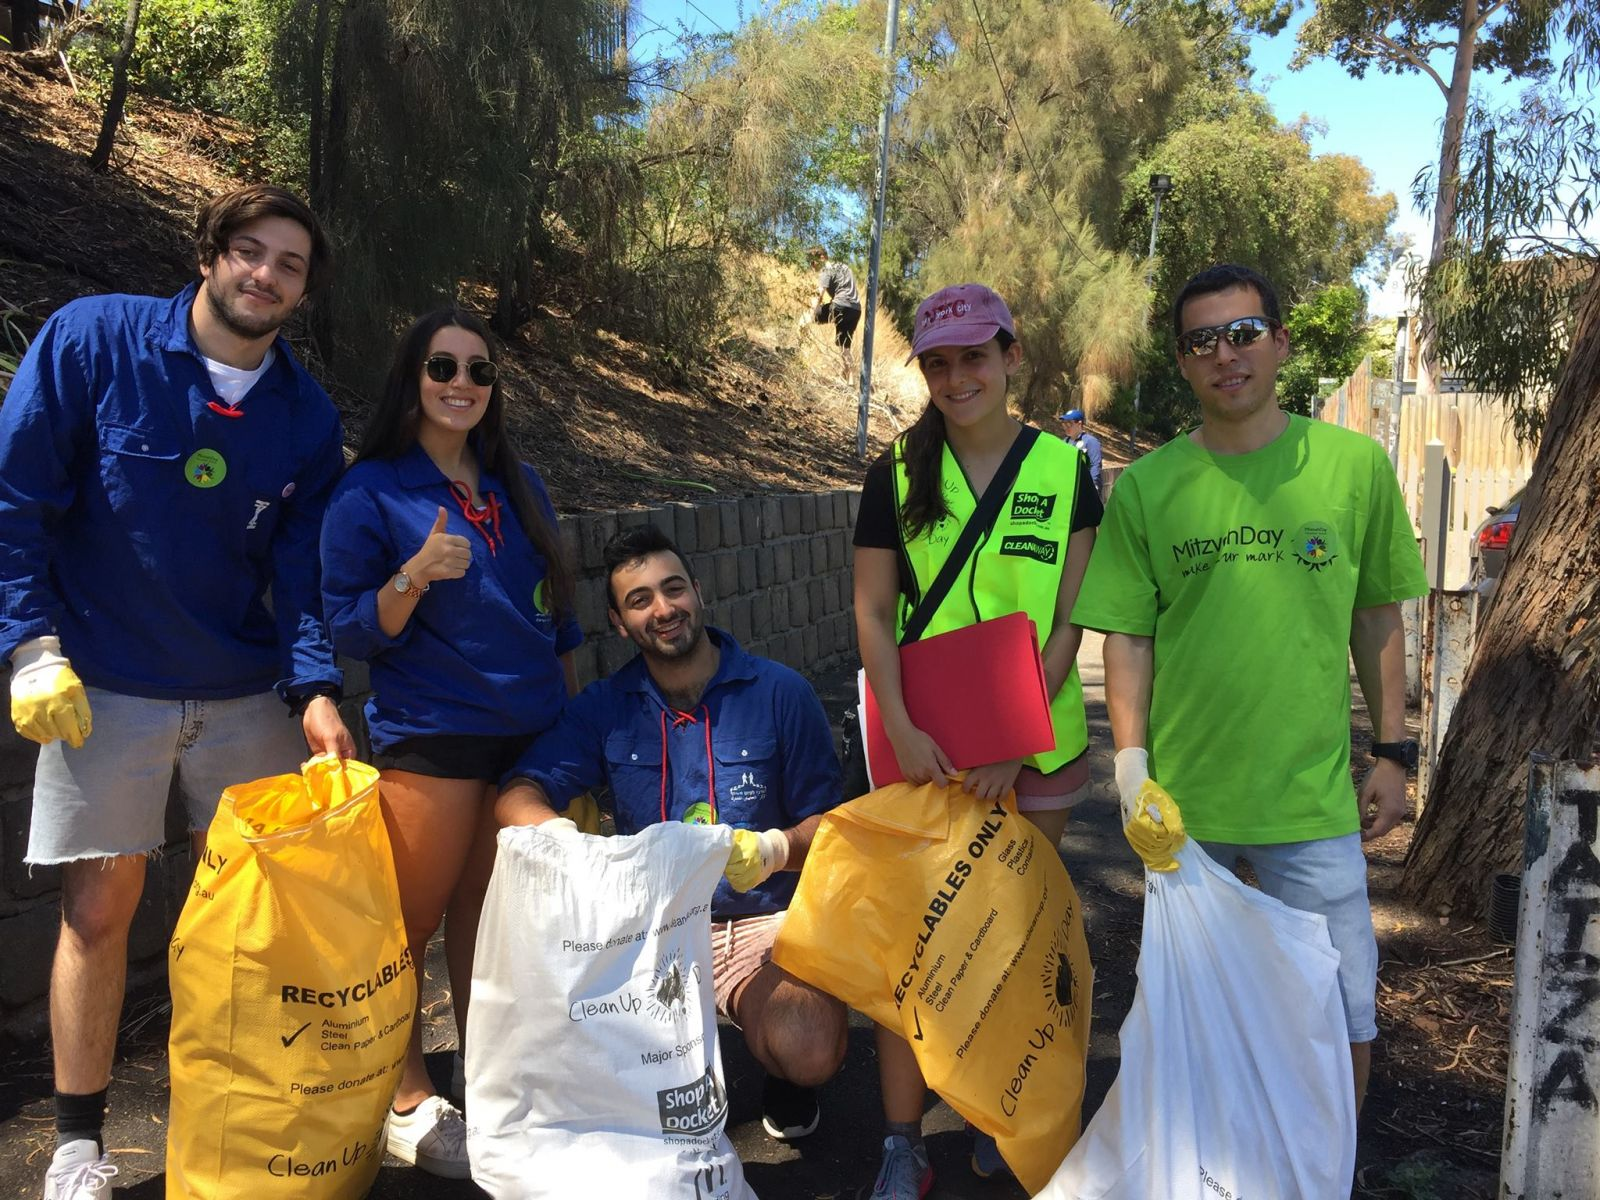 JNF and AZYC collaborated in cleaning up the environment around Balaclava Station.